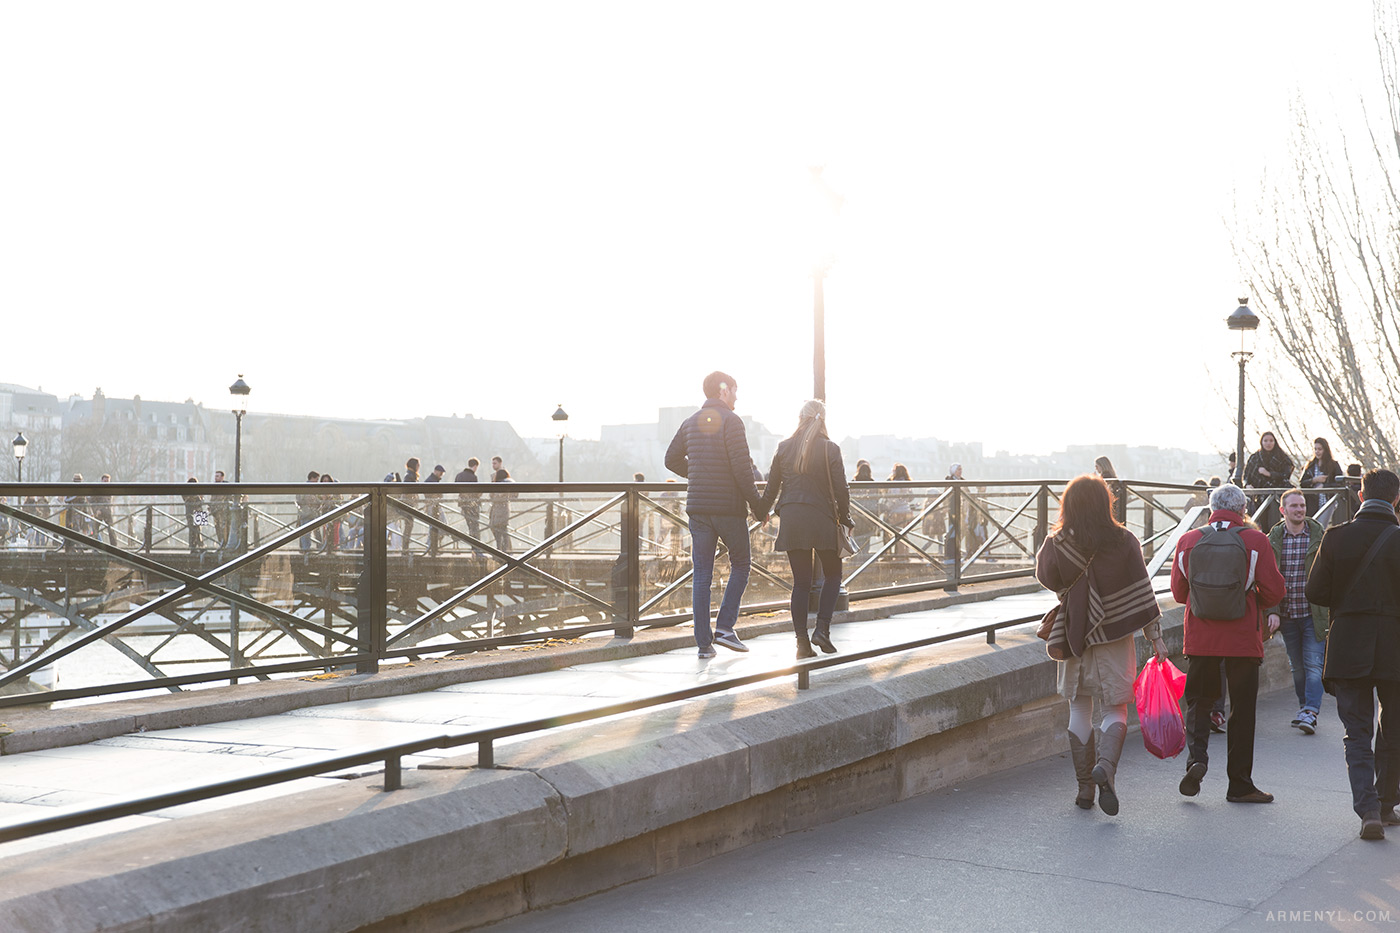 Pont-des-arts-Sunny-day-in-Paris,-France-photographed-by-Armenyl.com